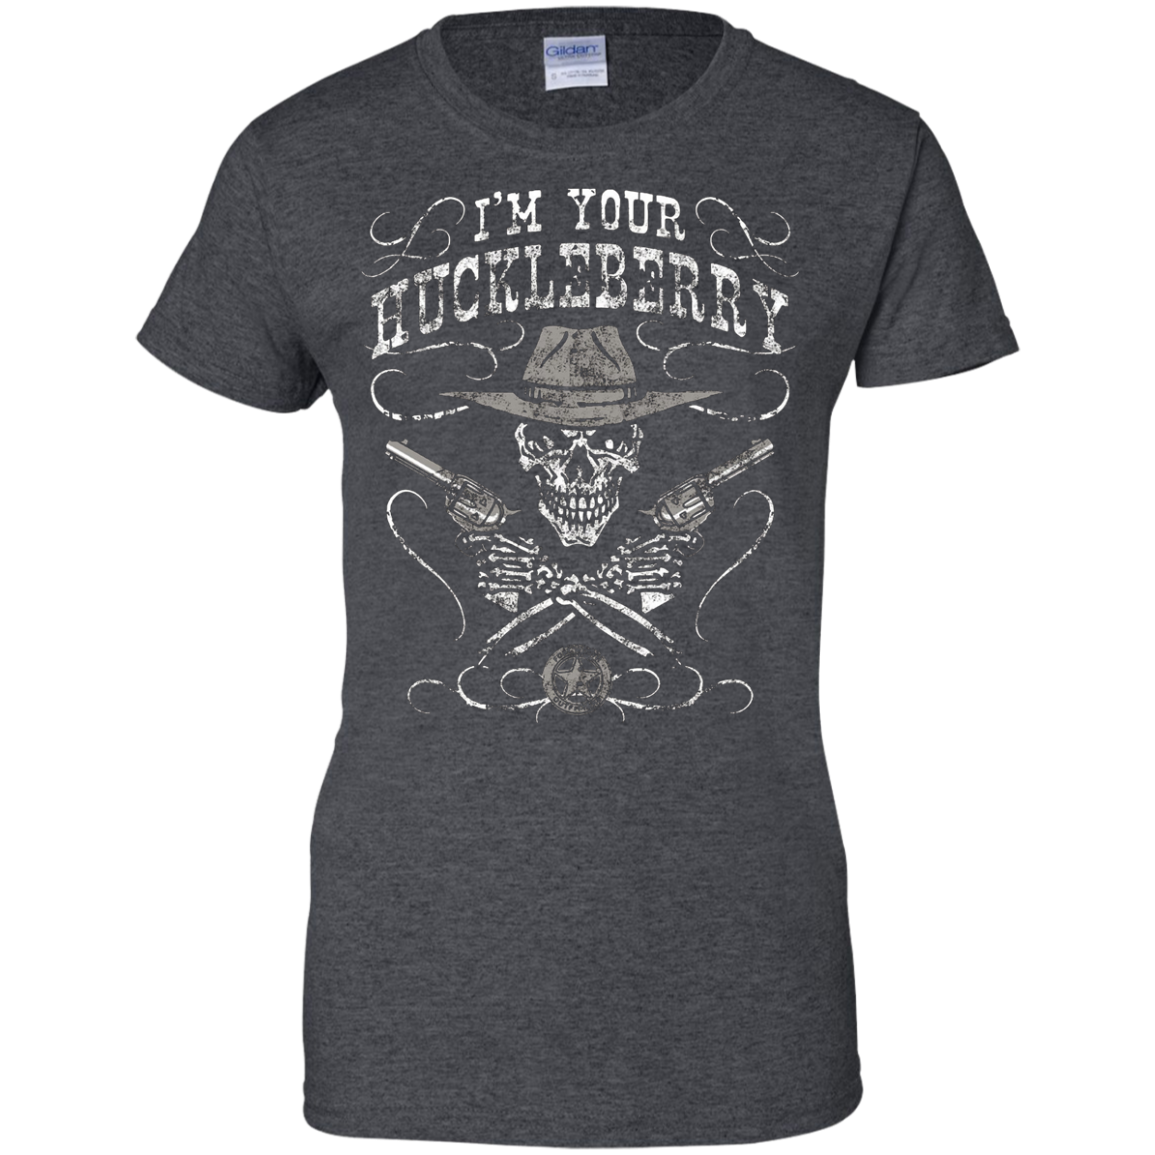 I'm Your Huckleberry Skull Gun Tee Shirt